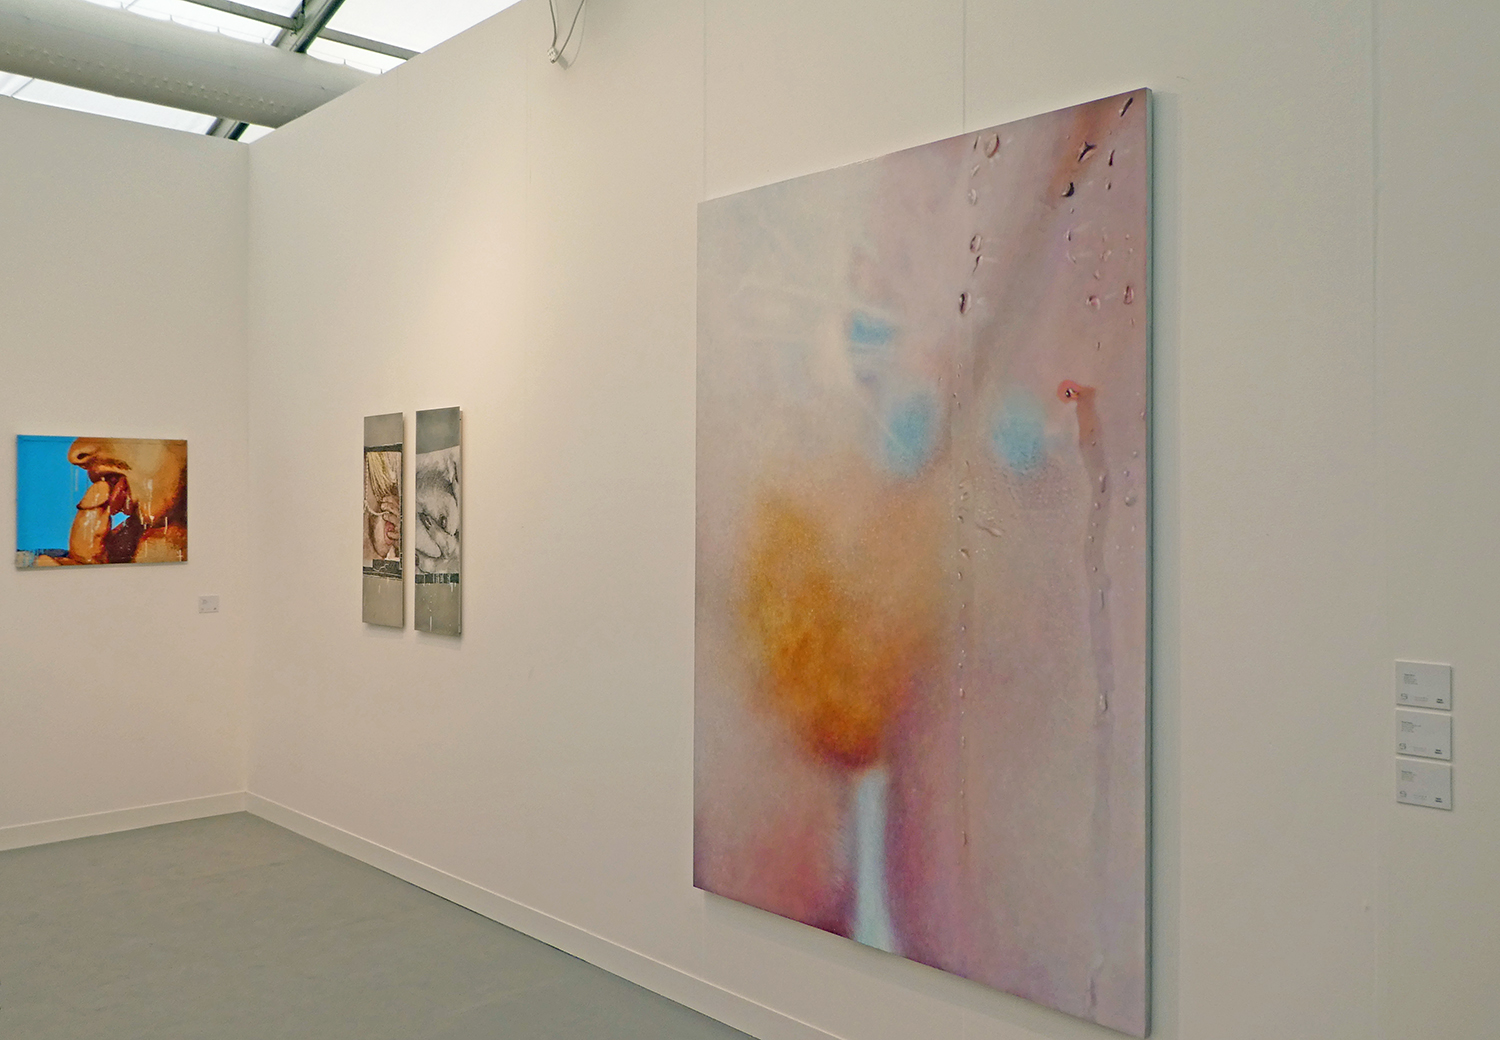 (foreground right) Marilyn Minter